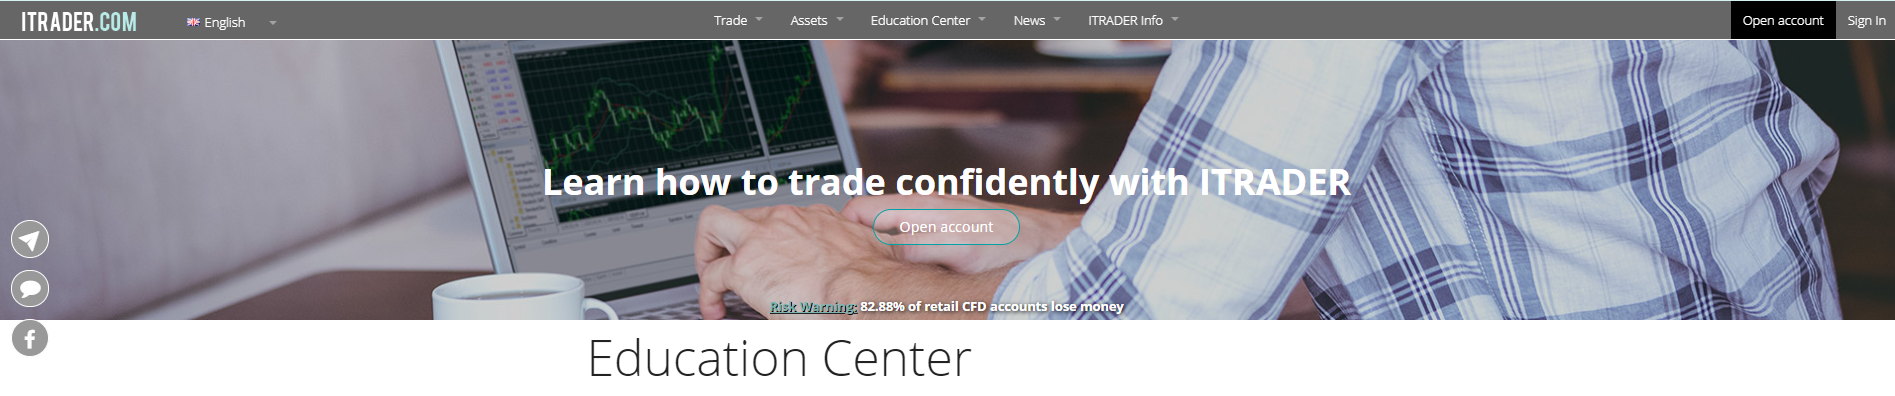 ITRADER - Learn how to trade